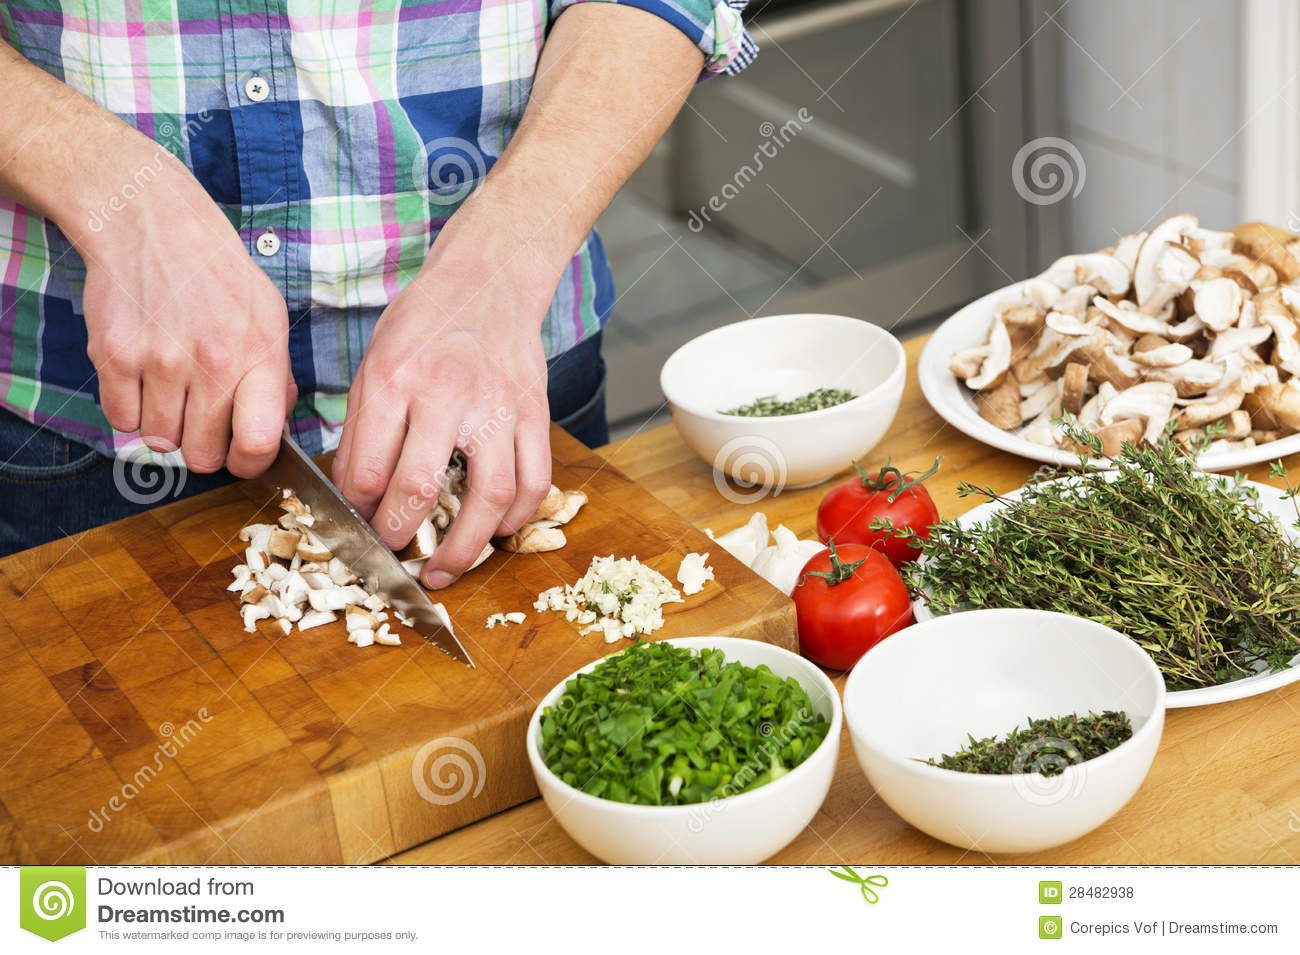 Man Chopping Mushrooms With Vegetables On Counter